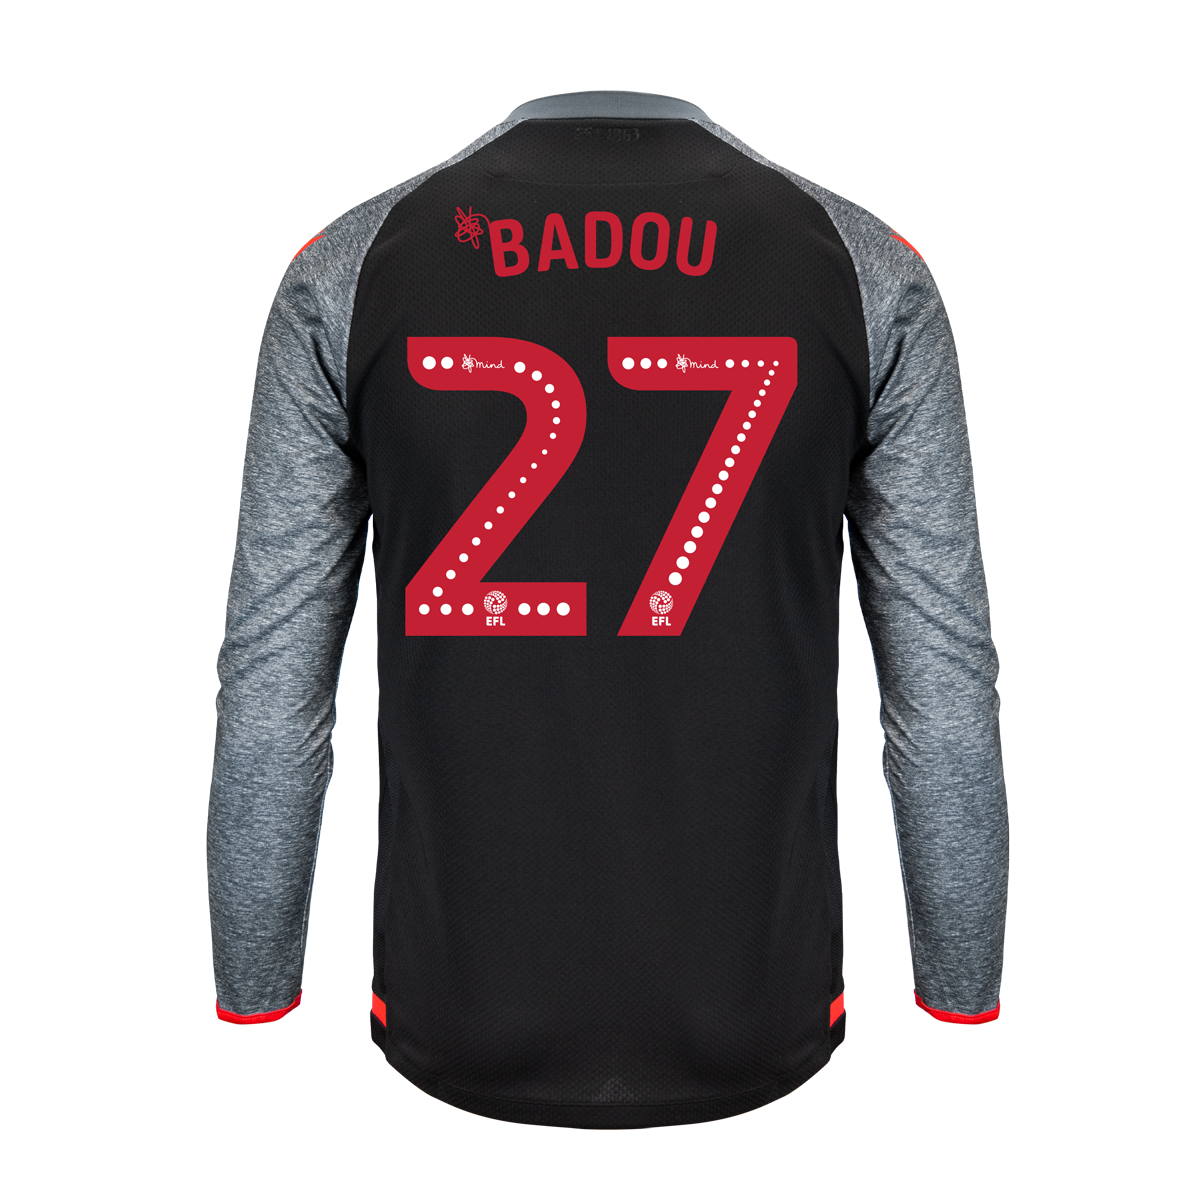 2019/20 Adult Away LS Shirt - Badou